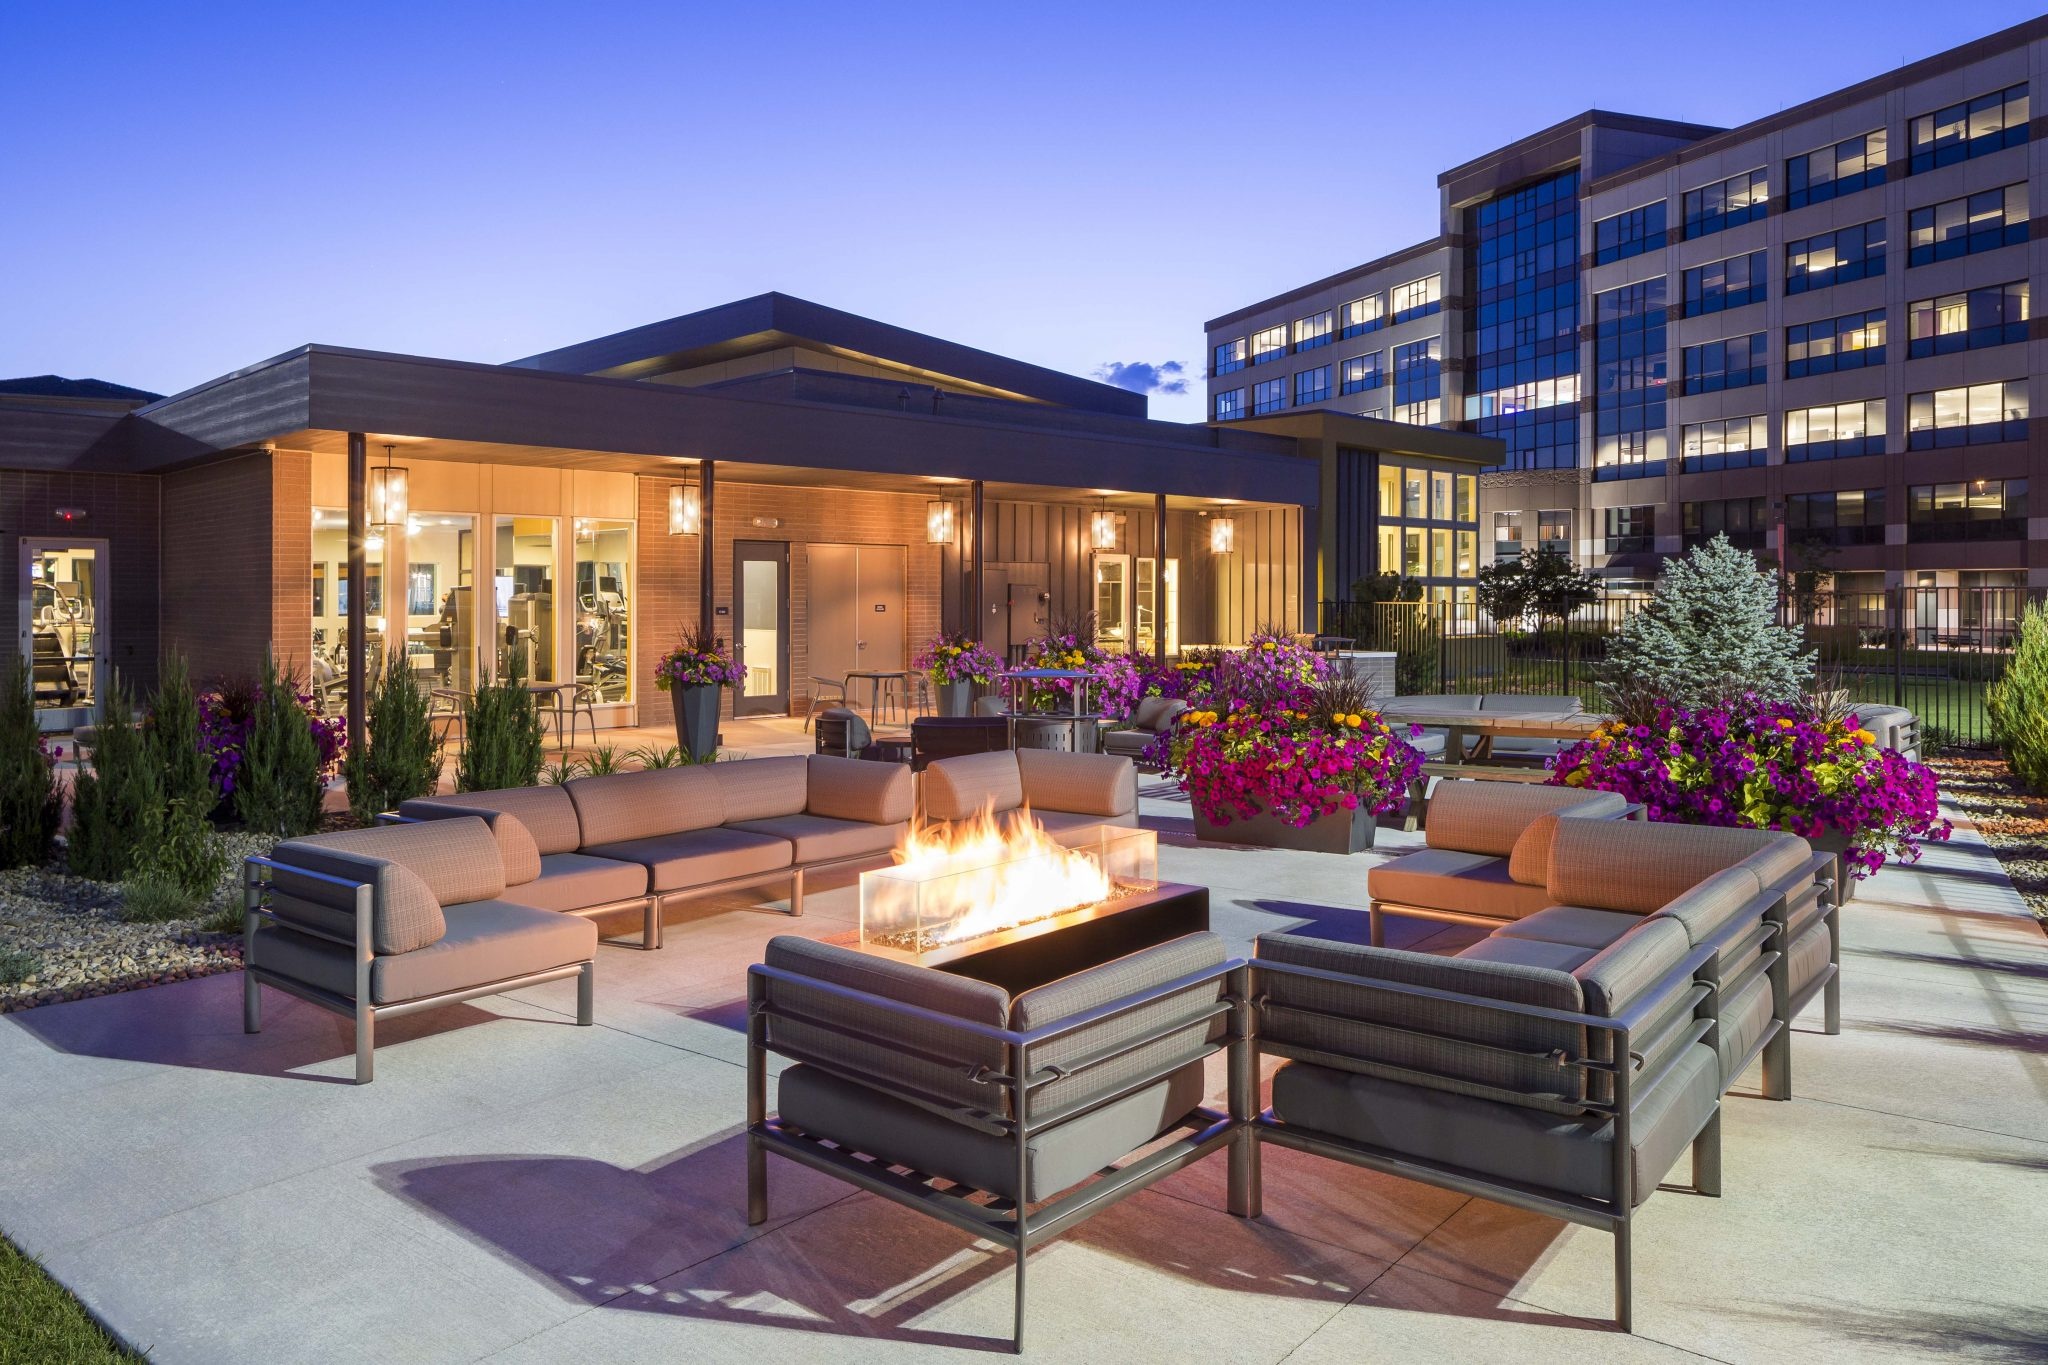 This is the Brand New Image Of Patio Homes for Sale Denver Tech Center